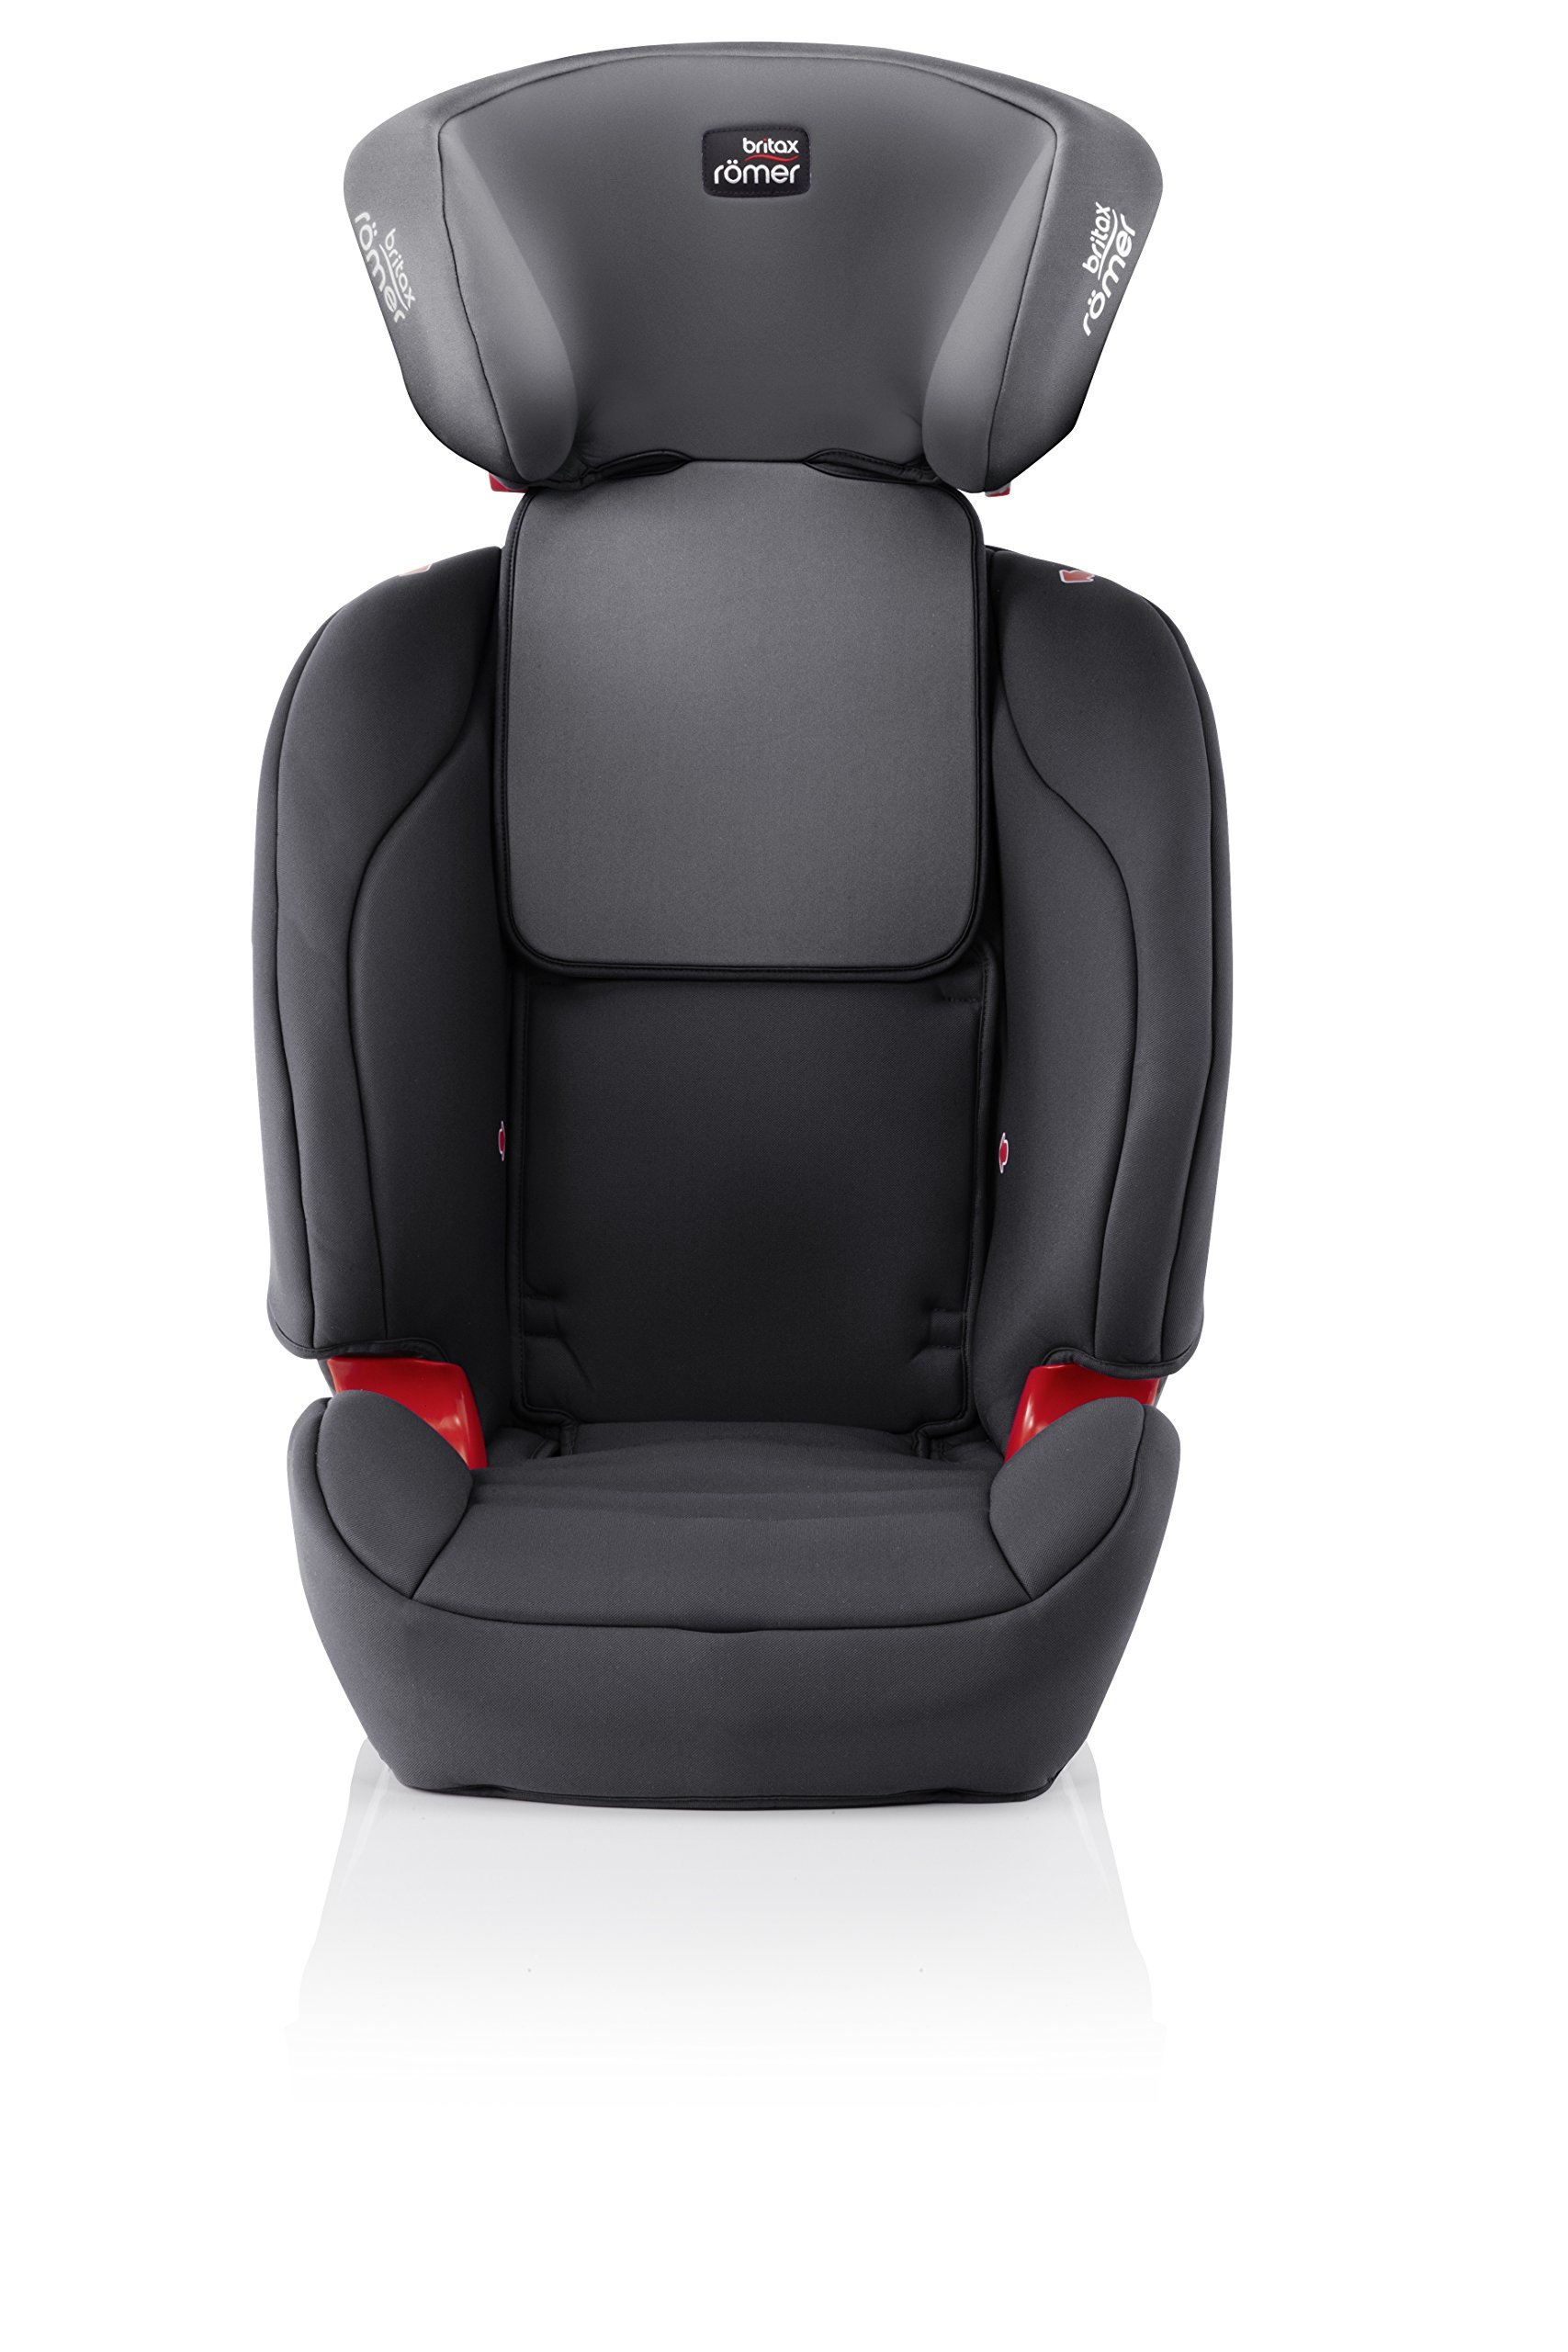 Britax Römer EVOLVA 1-2-3 SL SICT Group 1-2-3 (9-36kg) Car Seat - Storm Grey  Installation, ISOFIX and a 3-point seat belt, or 3-point seat belt only Advanced Side Impact Protection (SICT) minimises the force of an impact in a side collision CLICK & SAFE audible harness system for that extra reassurance when securing your child in the seat 6